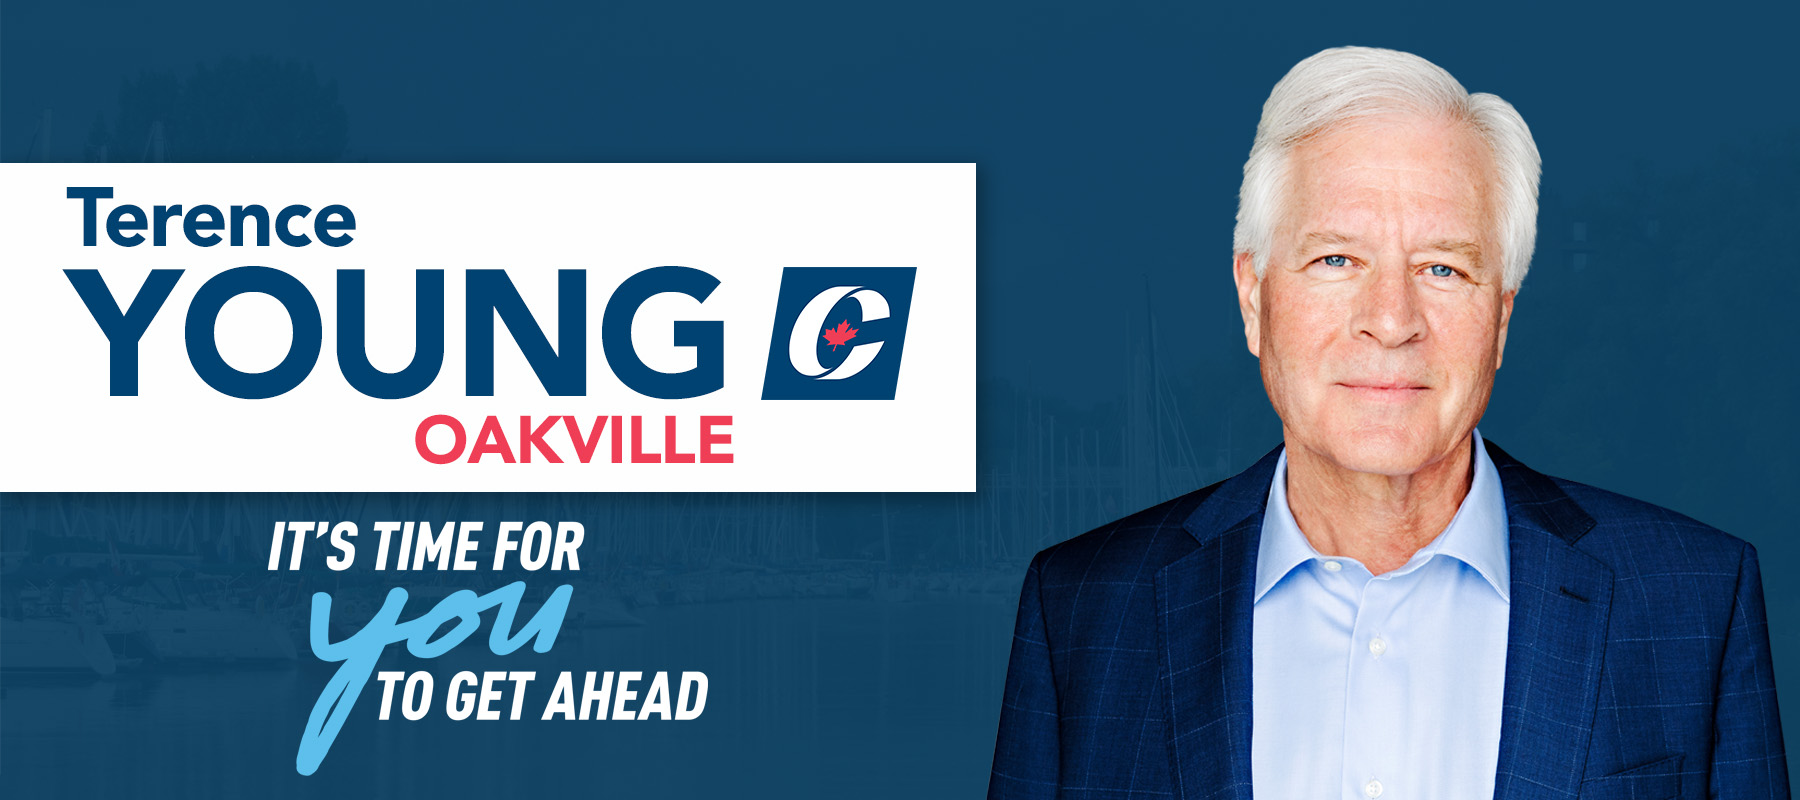 Terence Young for Oakville